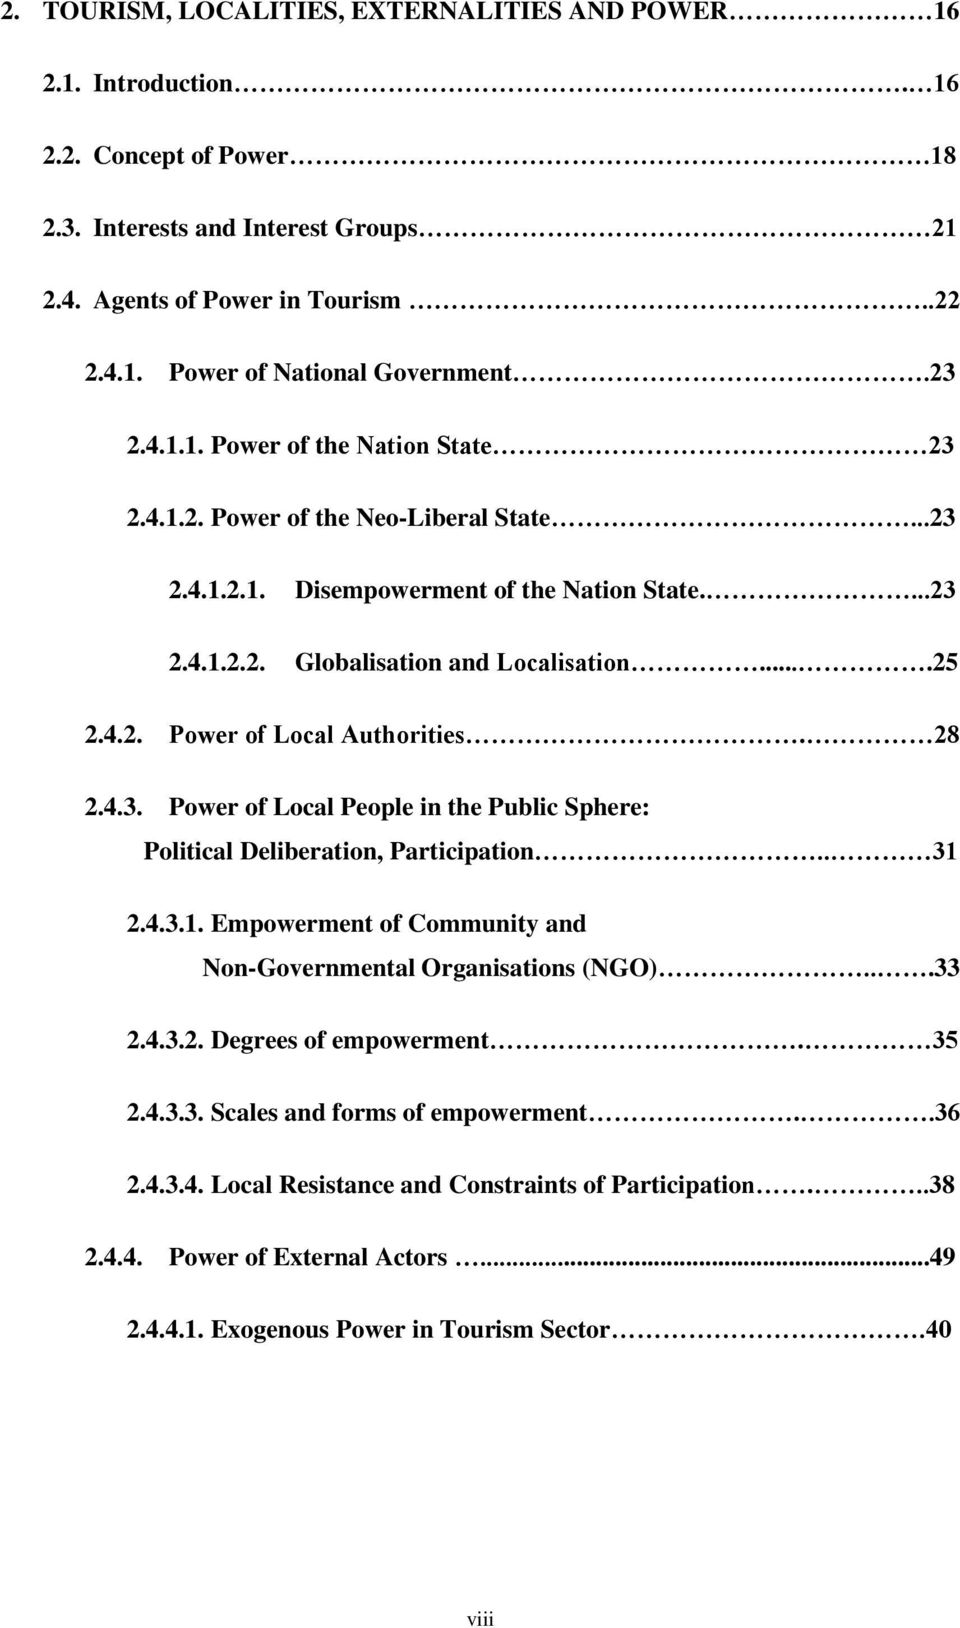 28 2.4.3. Power of Local People in the Public Sphere: Political Deliberation, Participation.. 31 2.4.3.1. Empowerment of Community and Non-Governmental Organisations (NGO)...33 2.4.3.2. Degrees of empowerment.